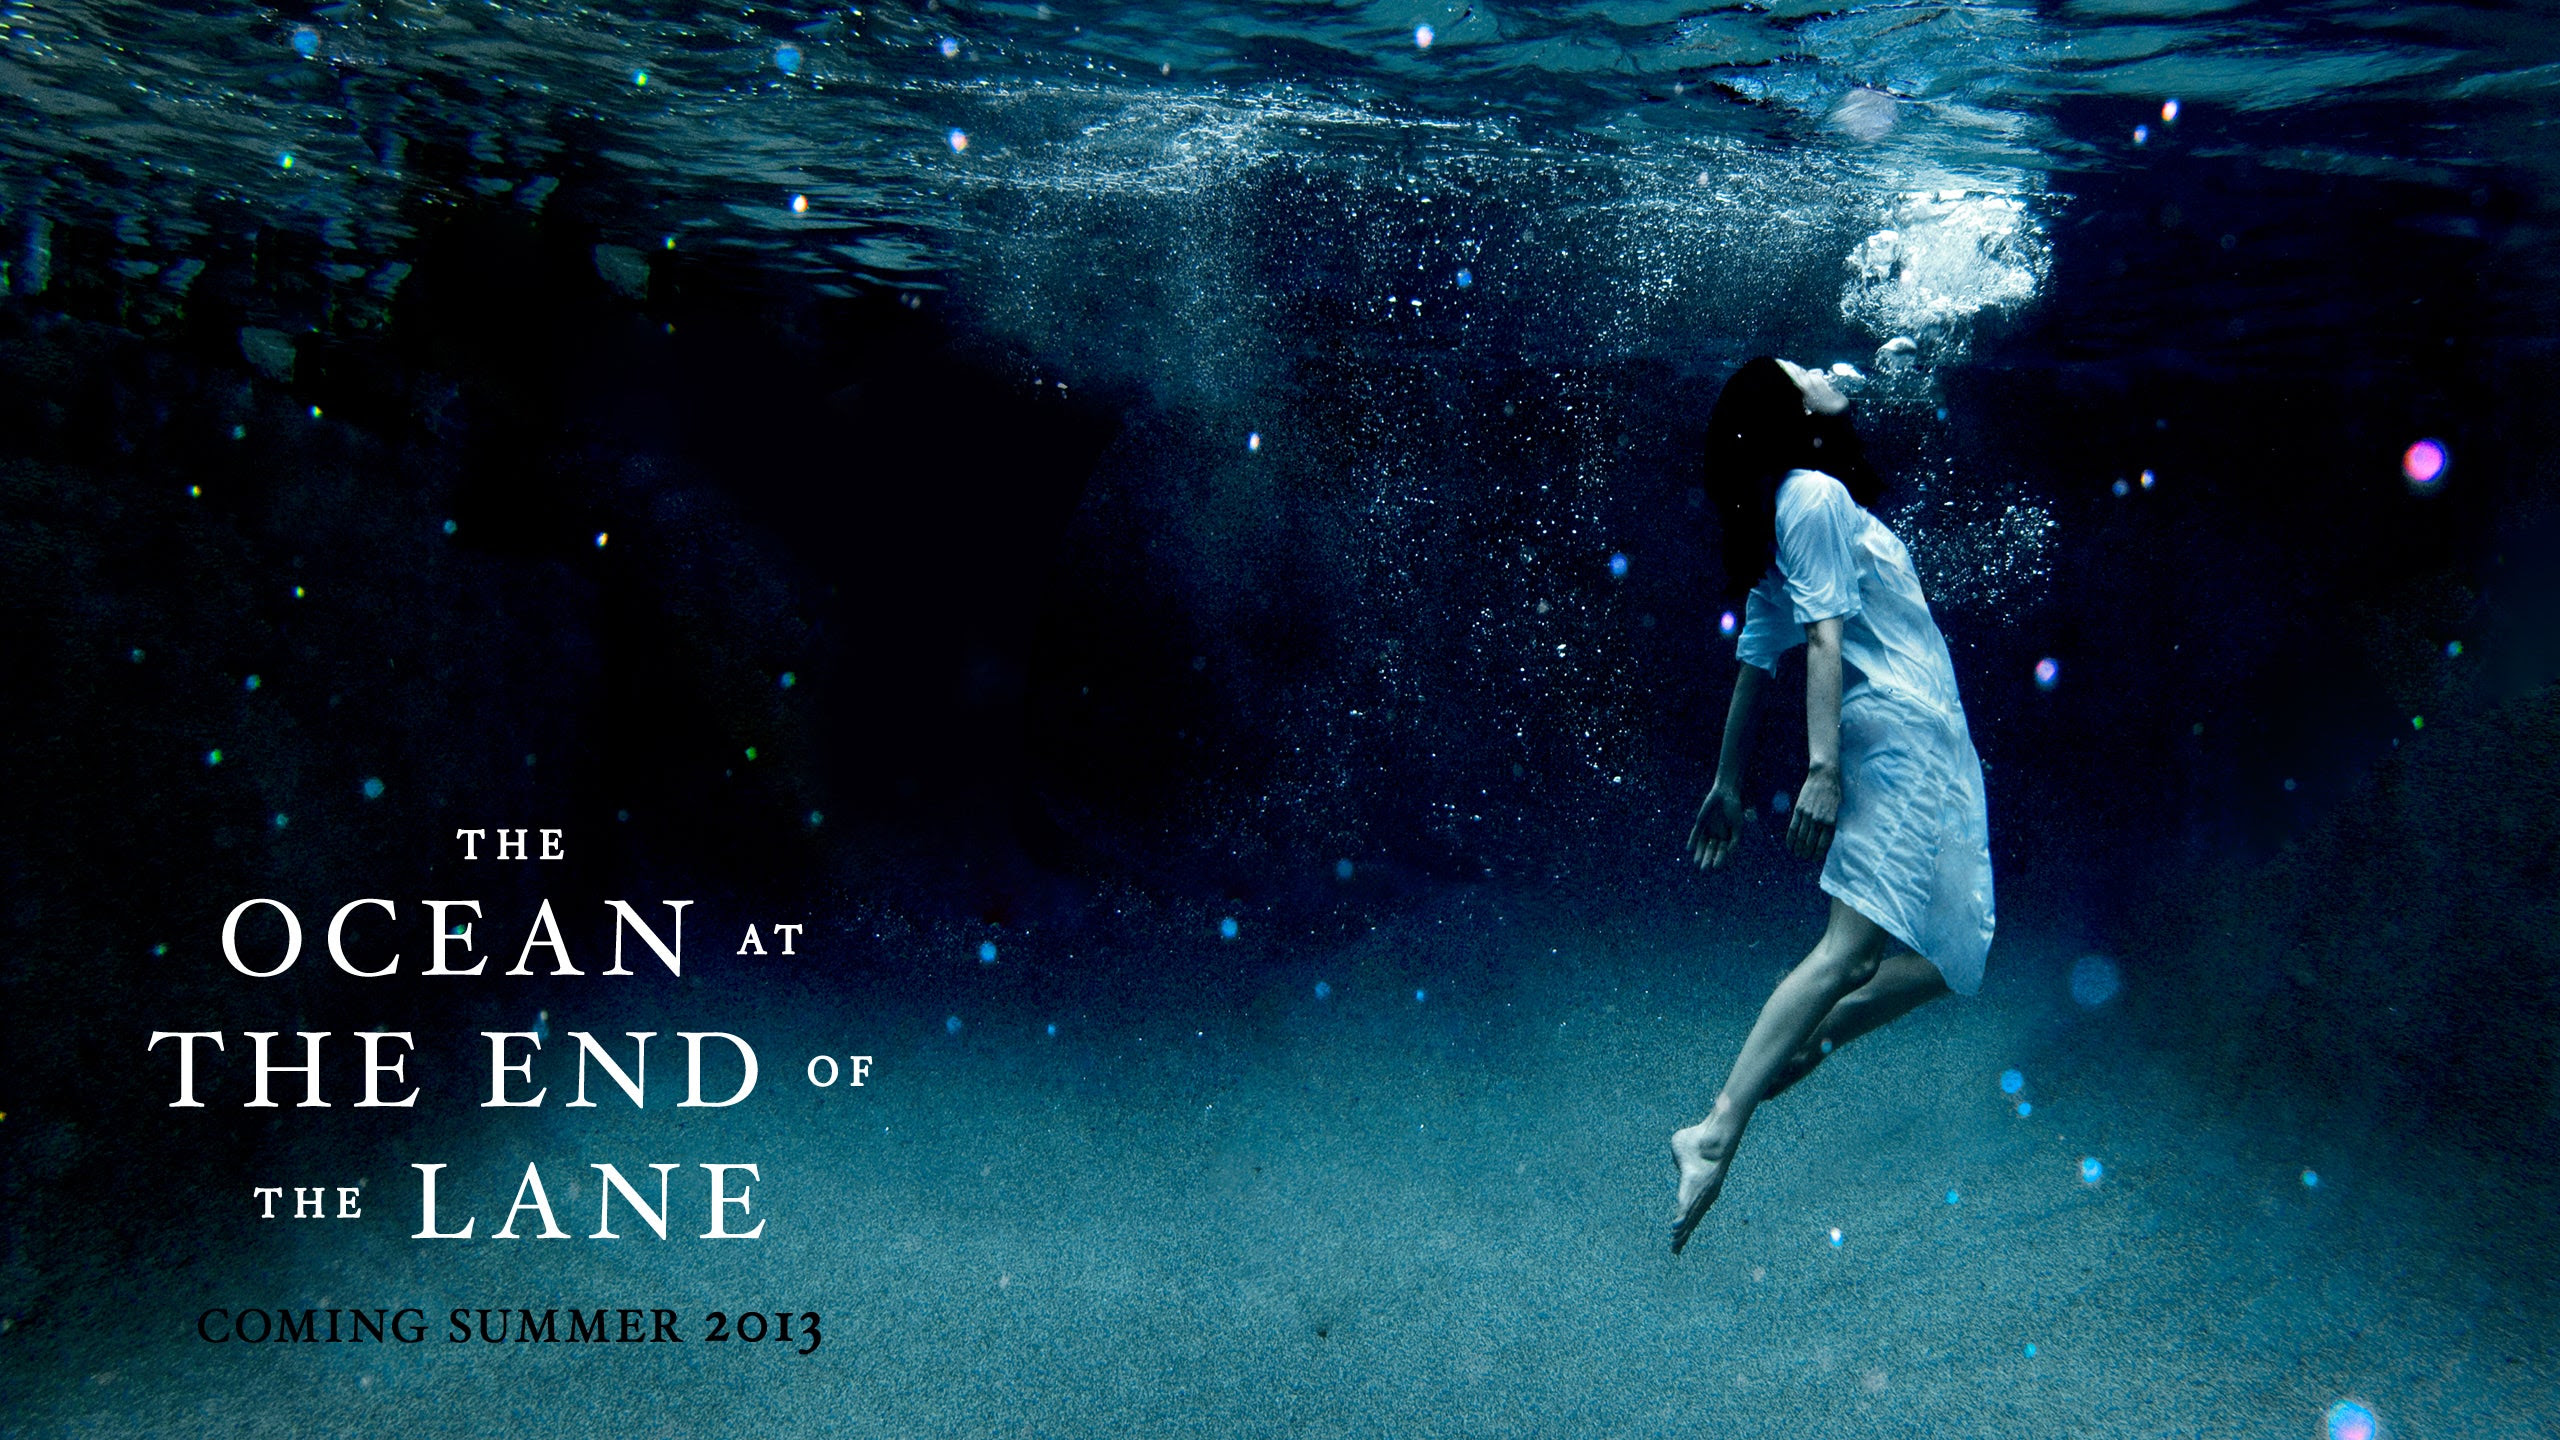 http://comicbook.com/wp-content/uploads/2013/02/ocean-at-the-end-of-the-lane-gaiman.jpg